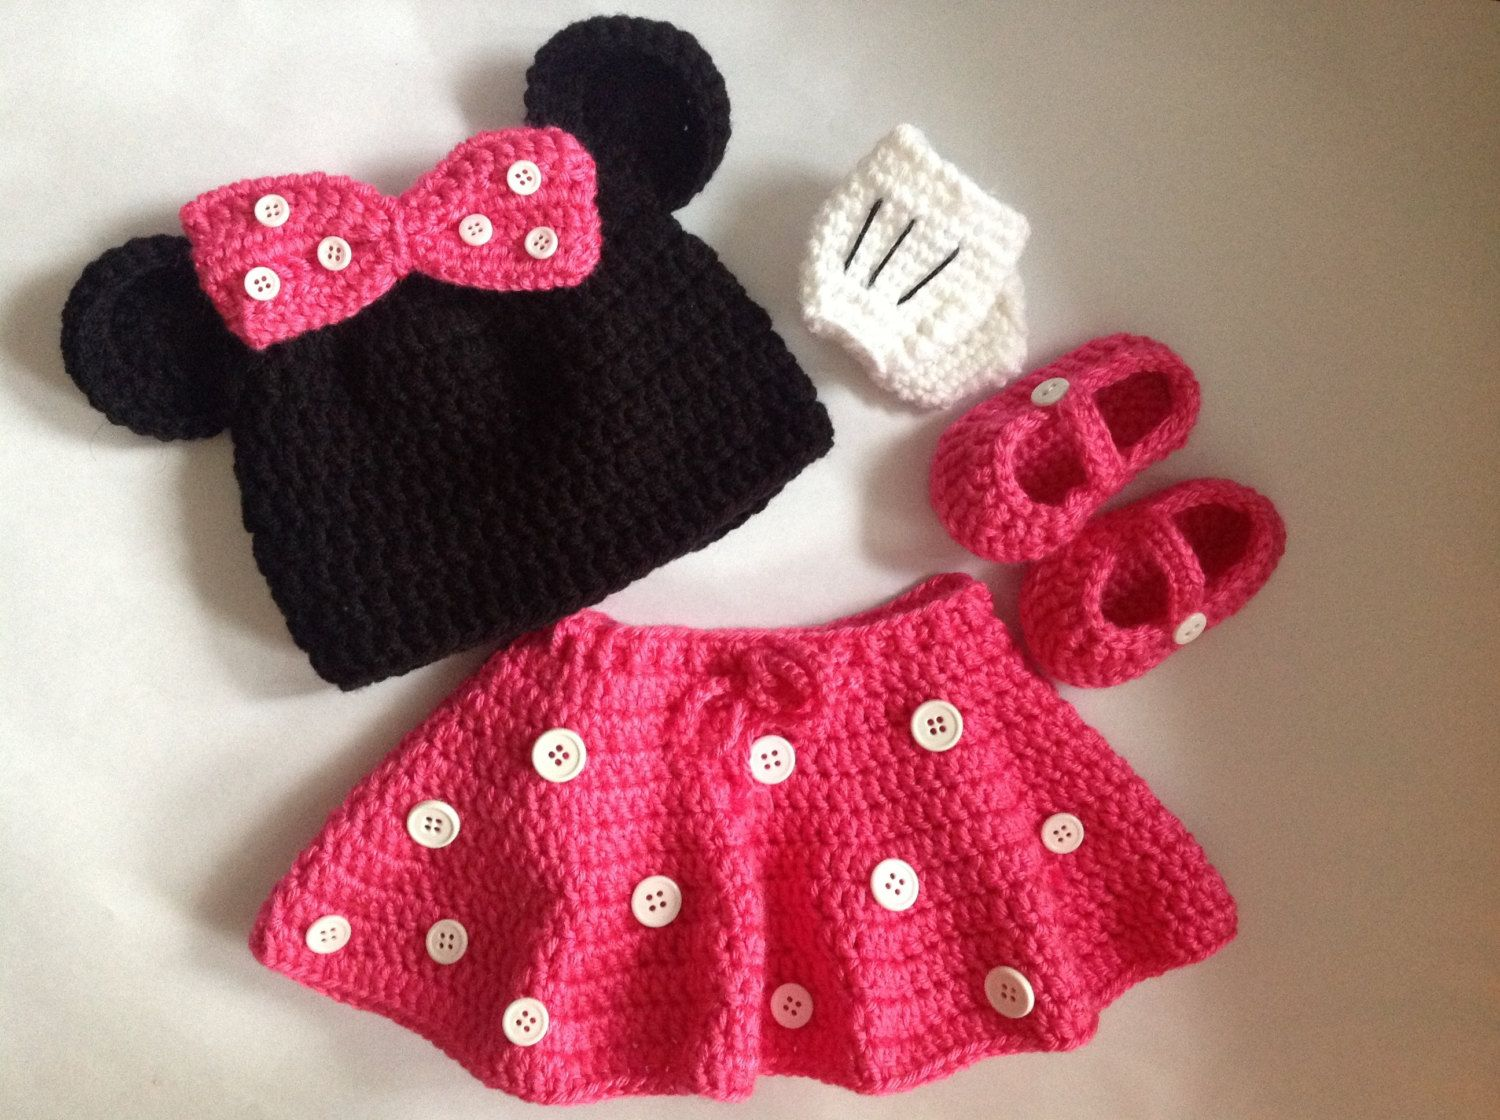 Pin by Amal on Projects to try | Pinterest | Mittens, Minnie mouse ...